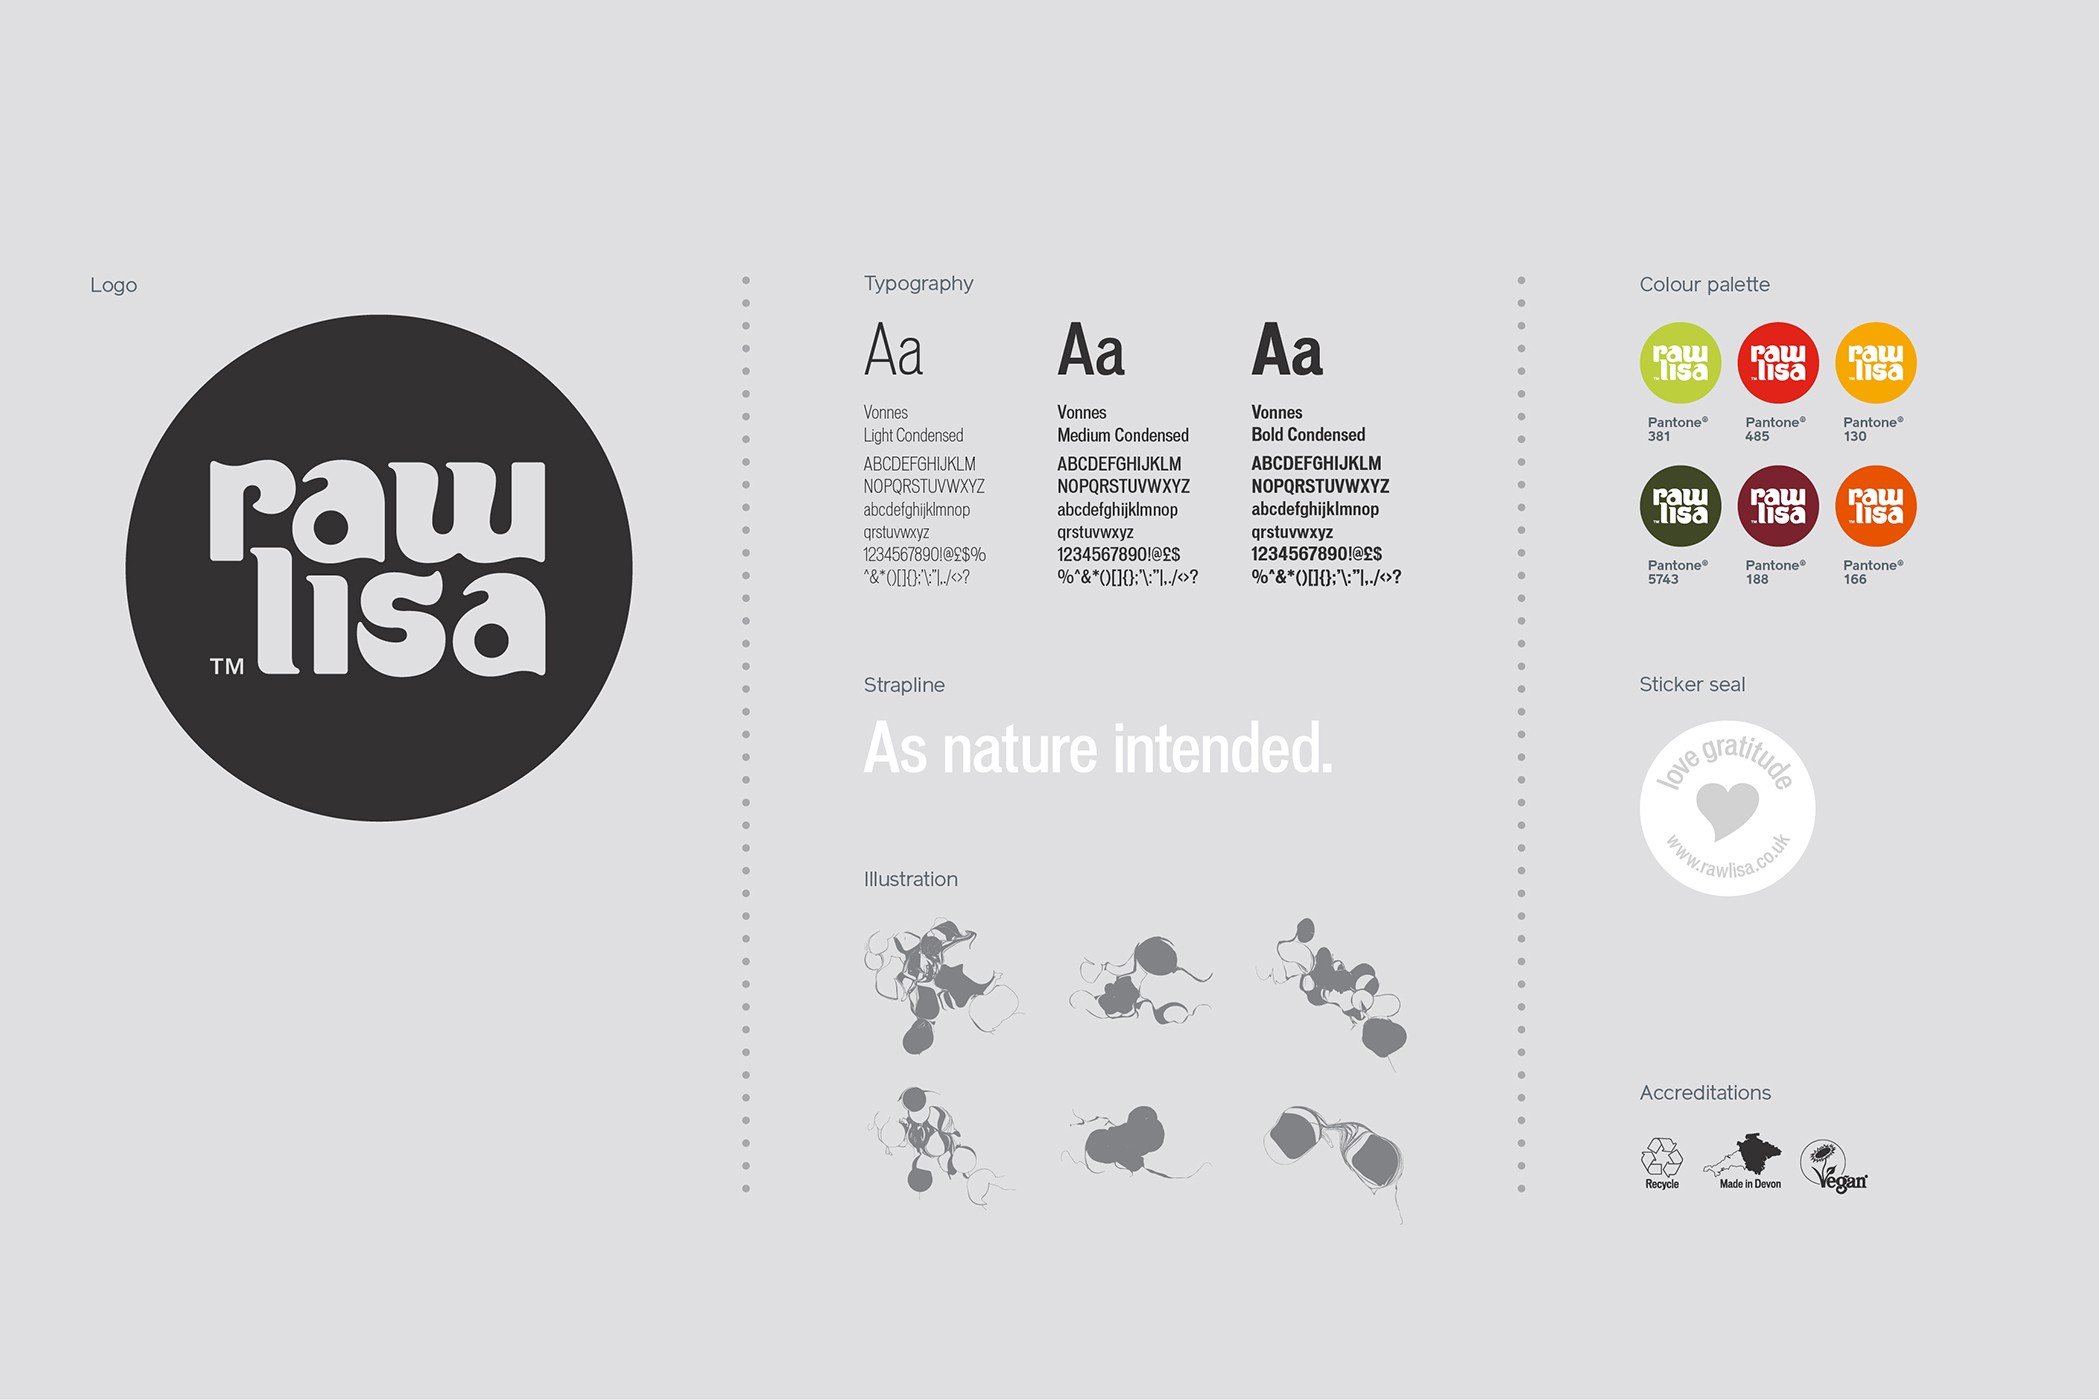 Raw Lisa - Brand Identity and Packaging